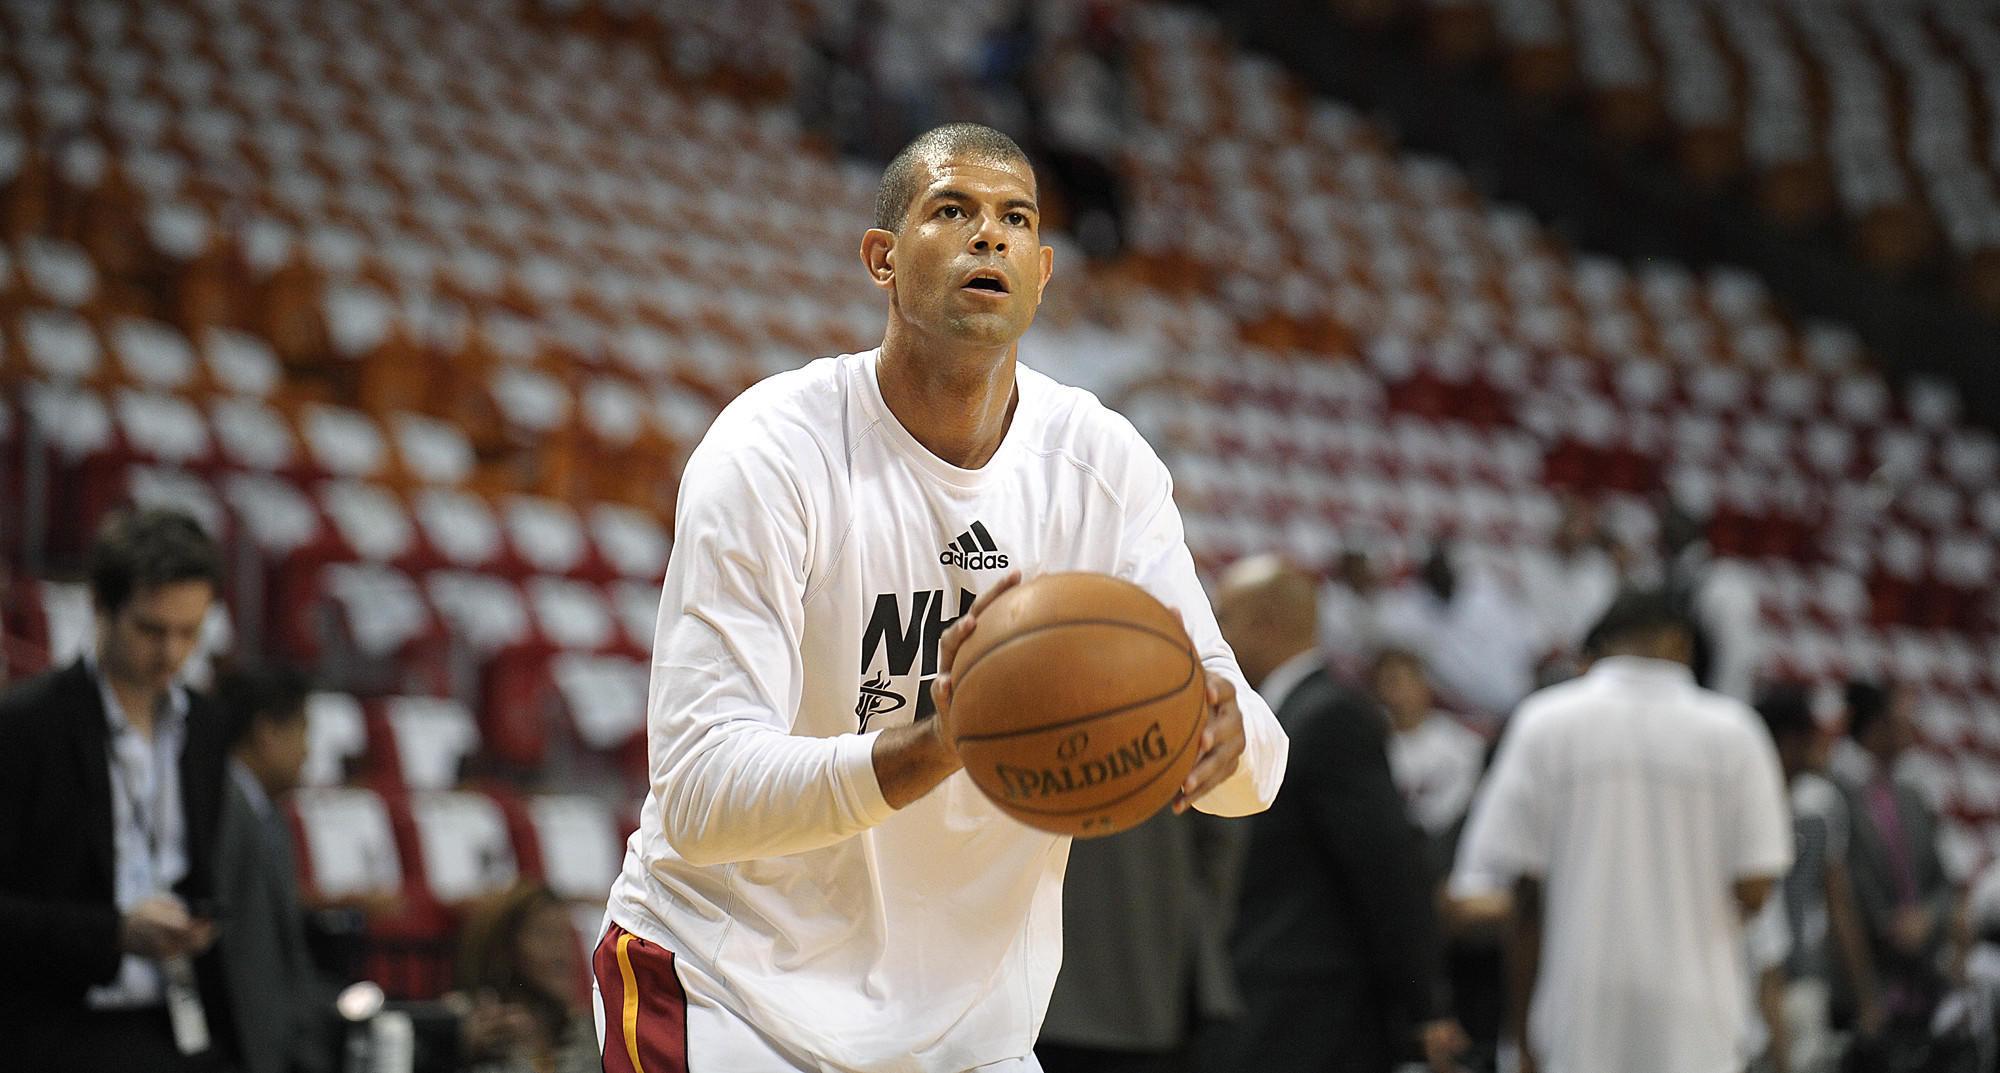 Miami Heat forward Shane Battier warms up before the start of Game 4 of the Eastern Conference Finals against the Indiana Pacers, Monday, May 26, 2014, at AmericanAirlines Arena. Michael Laughlin, South Florida Sun Sentinel